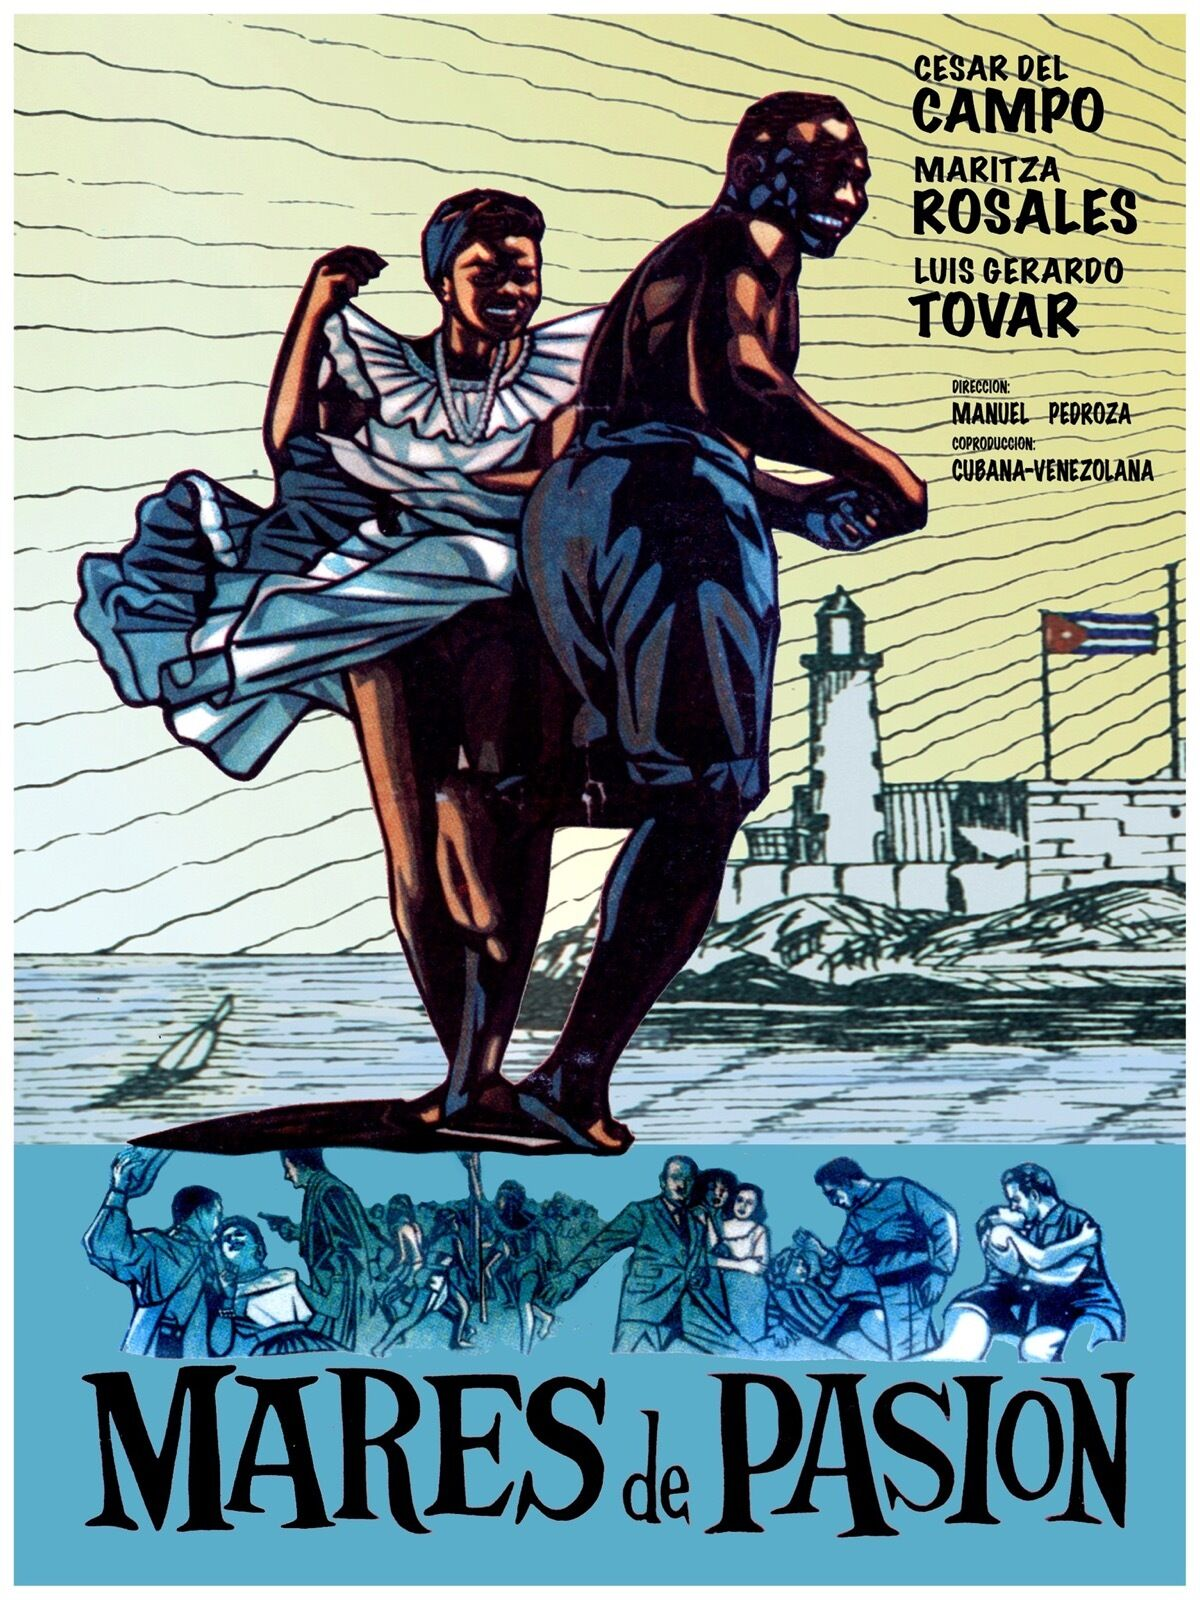 High Quality POSTER on Paper or Cotton Canvas.Movie Mares de Pasion.Rumba.3944